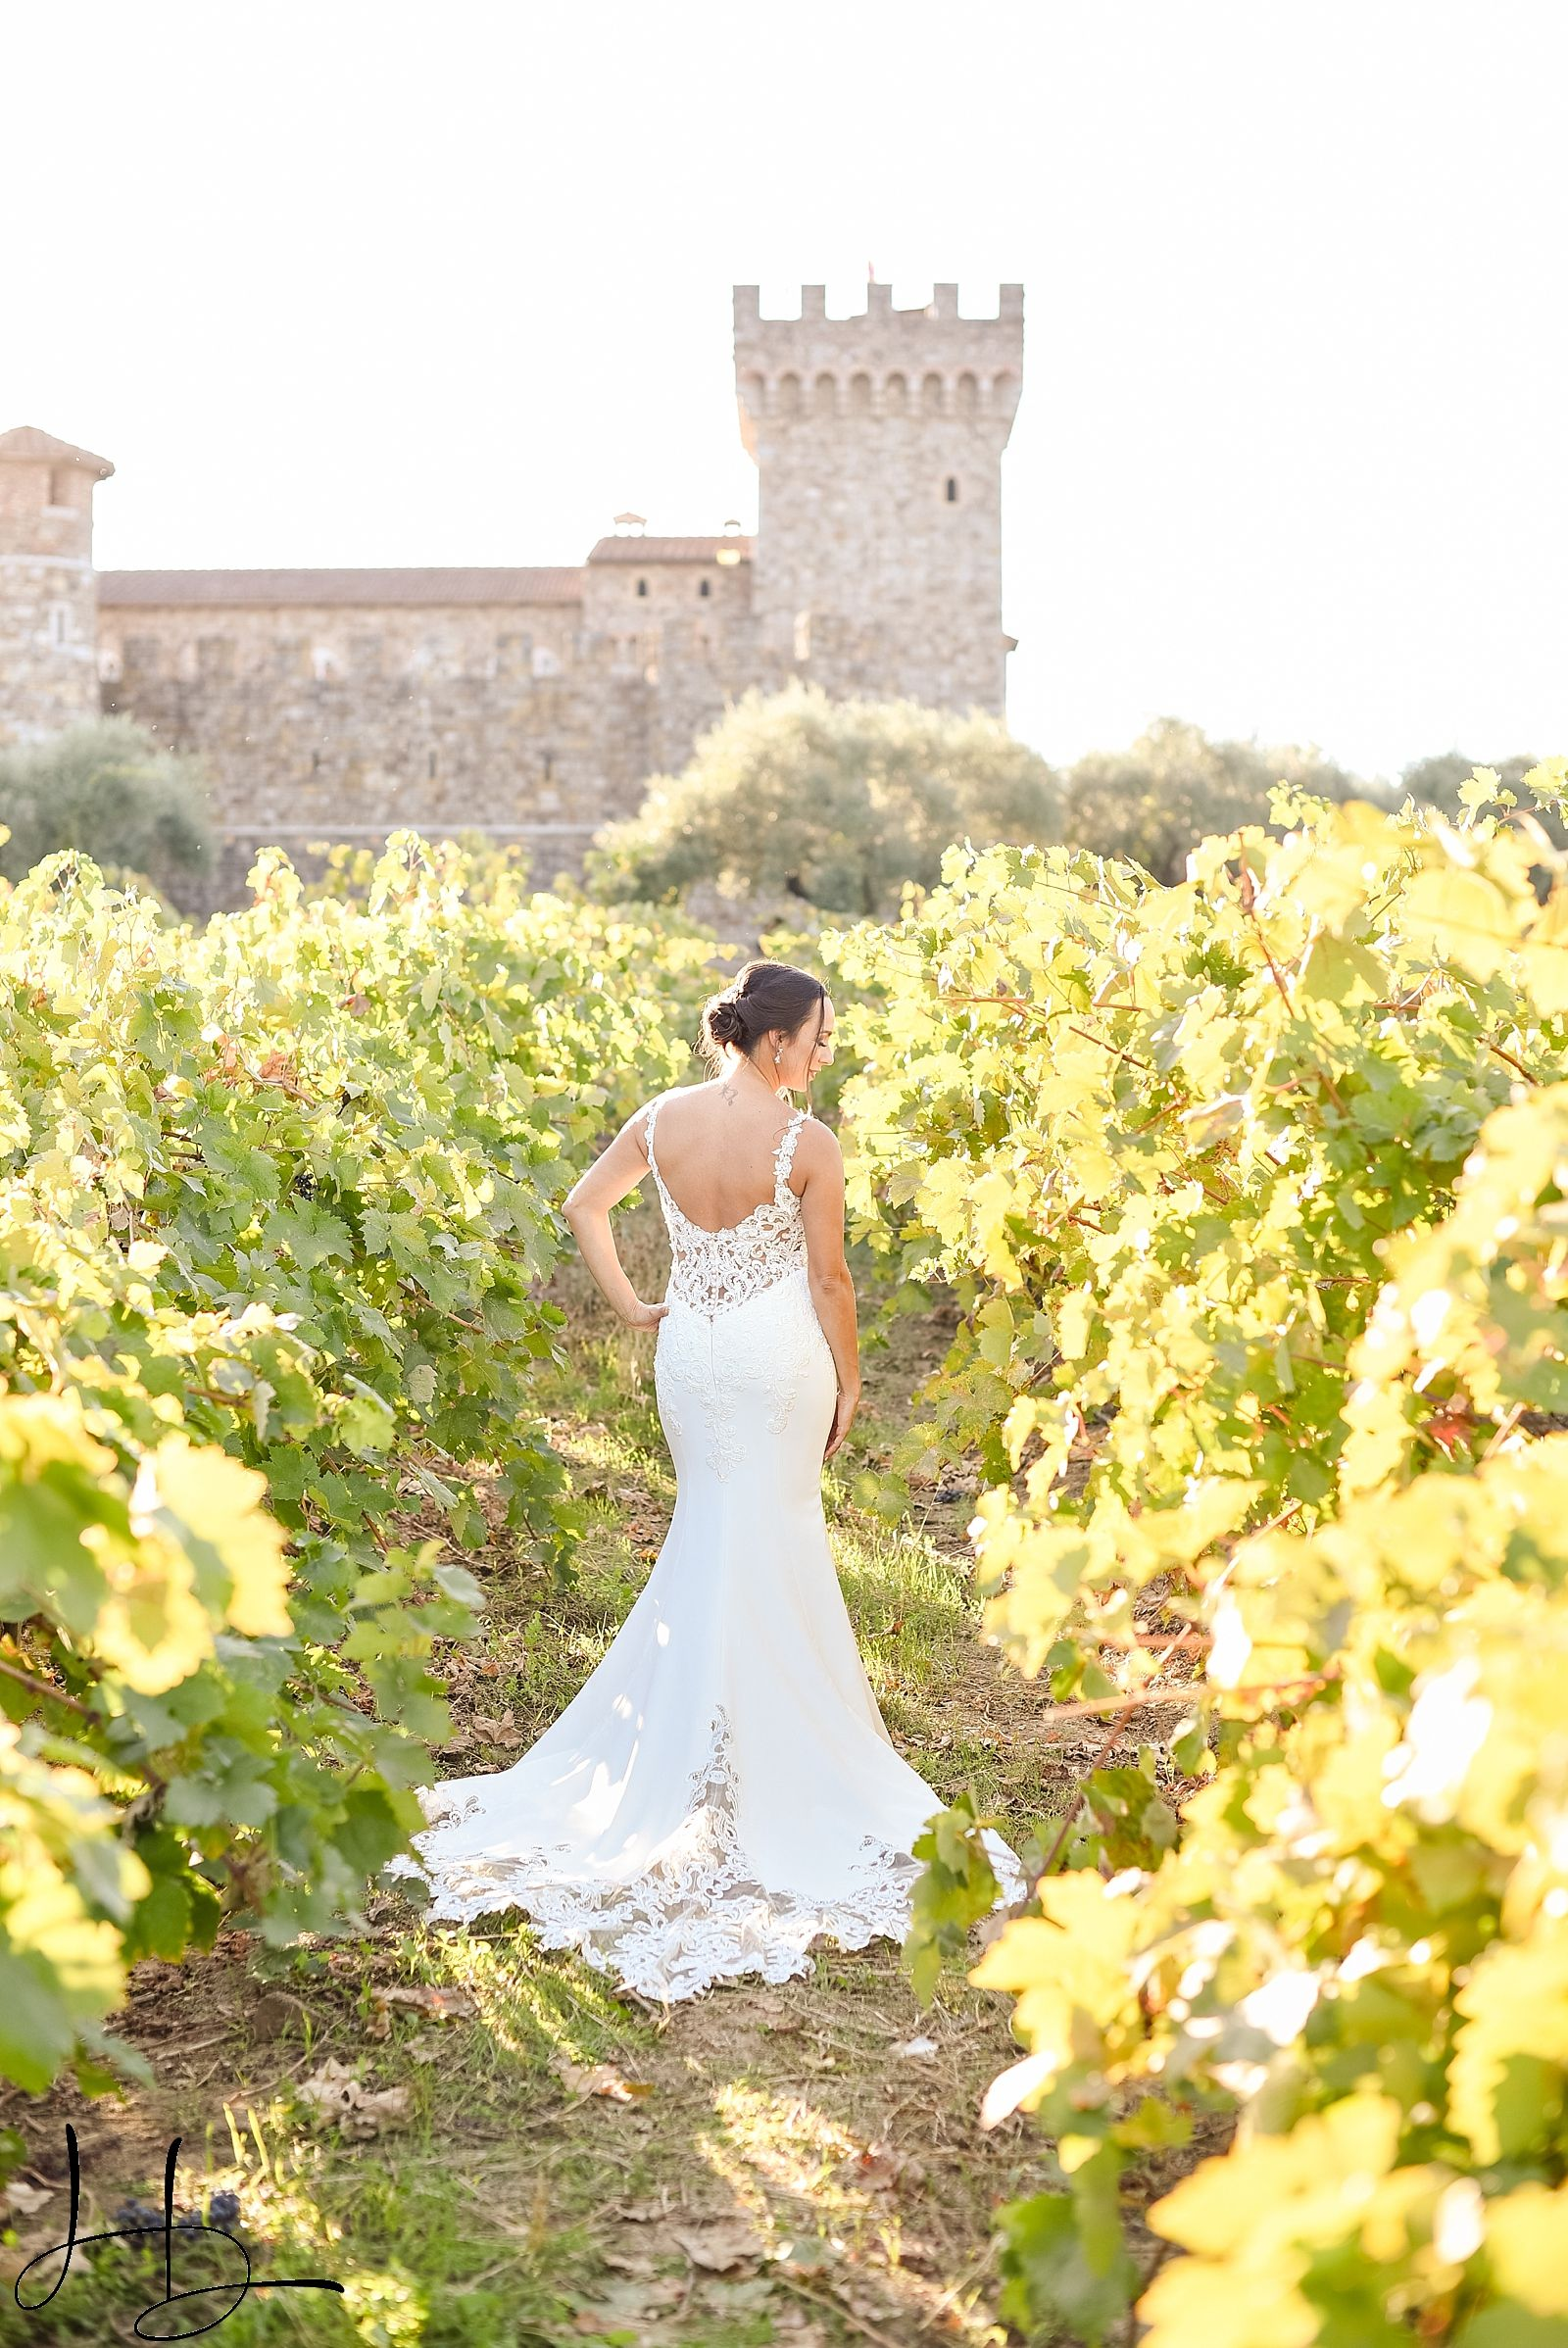 A Gorgeous Bride In The Midst Of A Beautiful Vineyard With A Castle